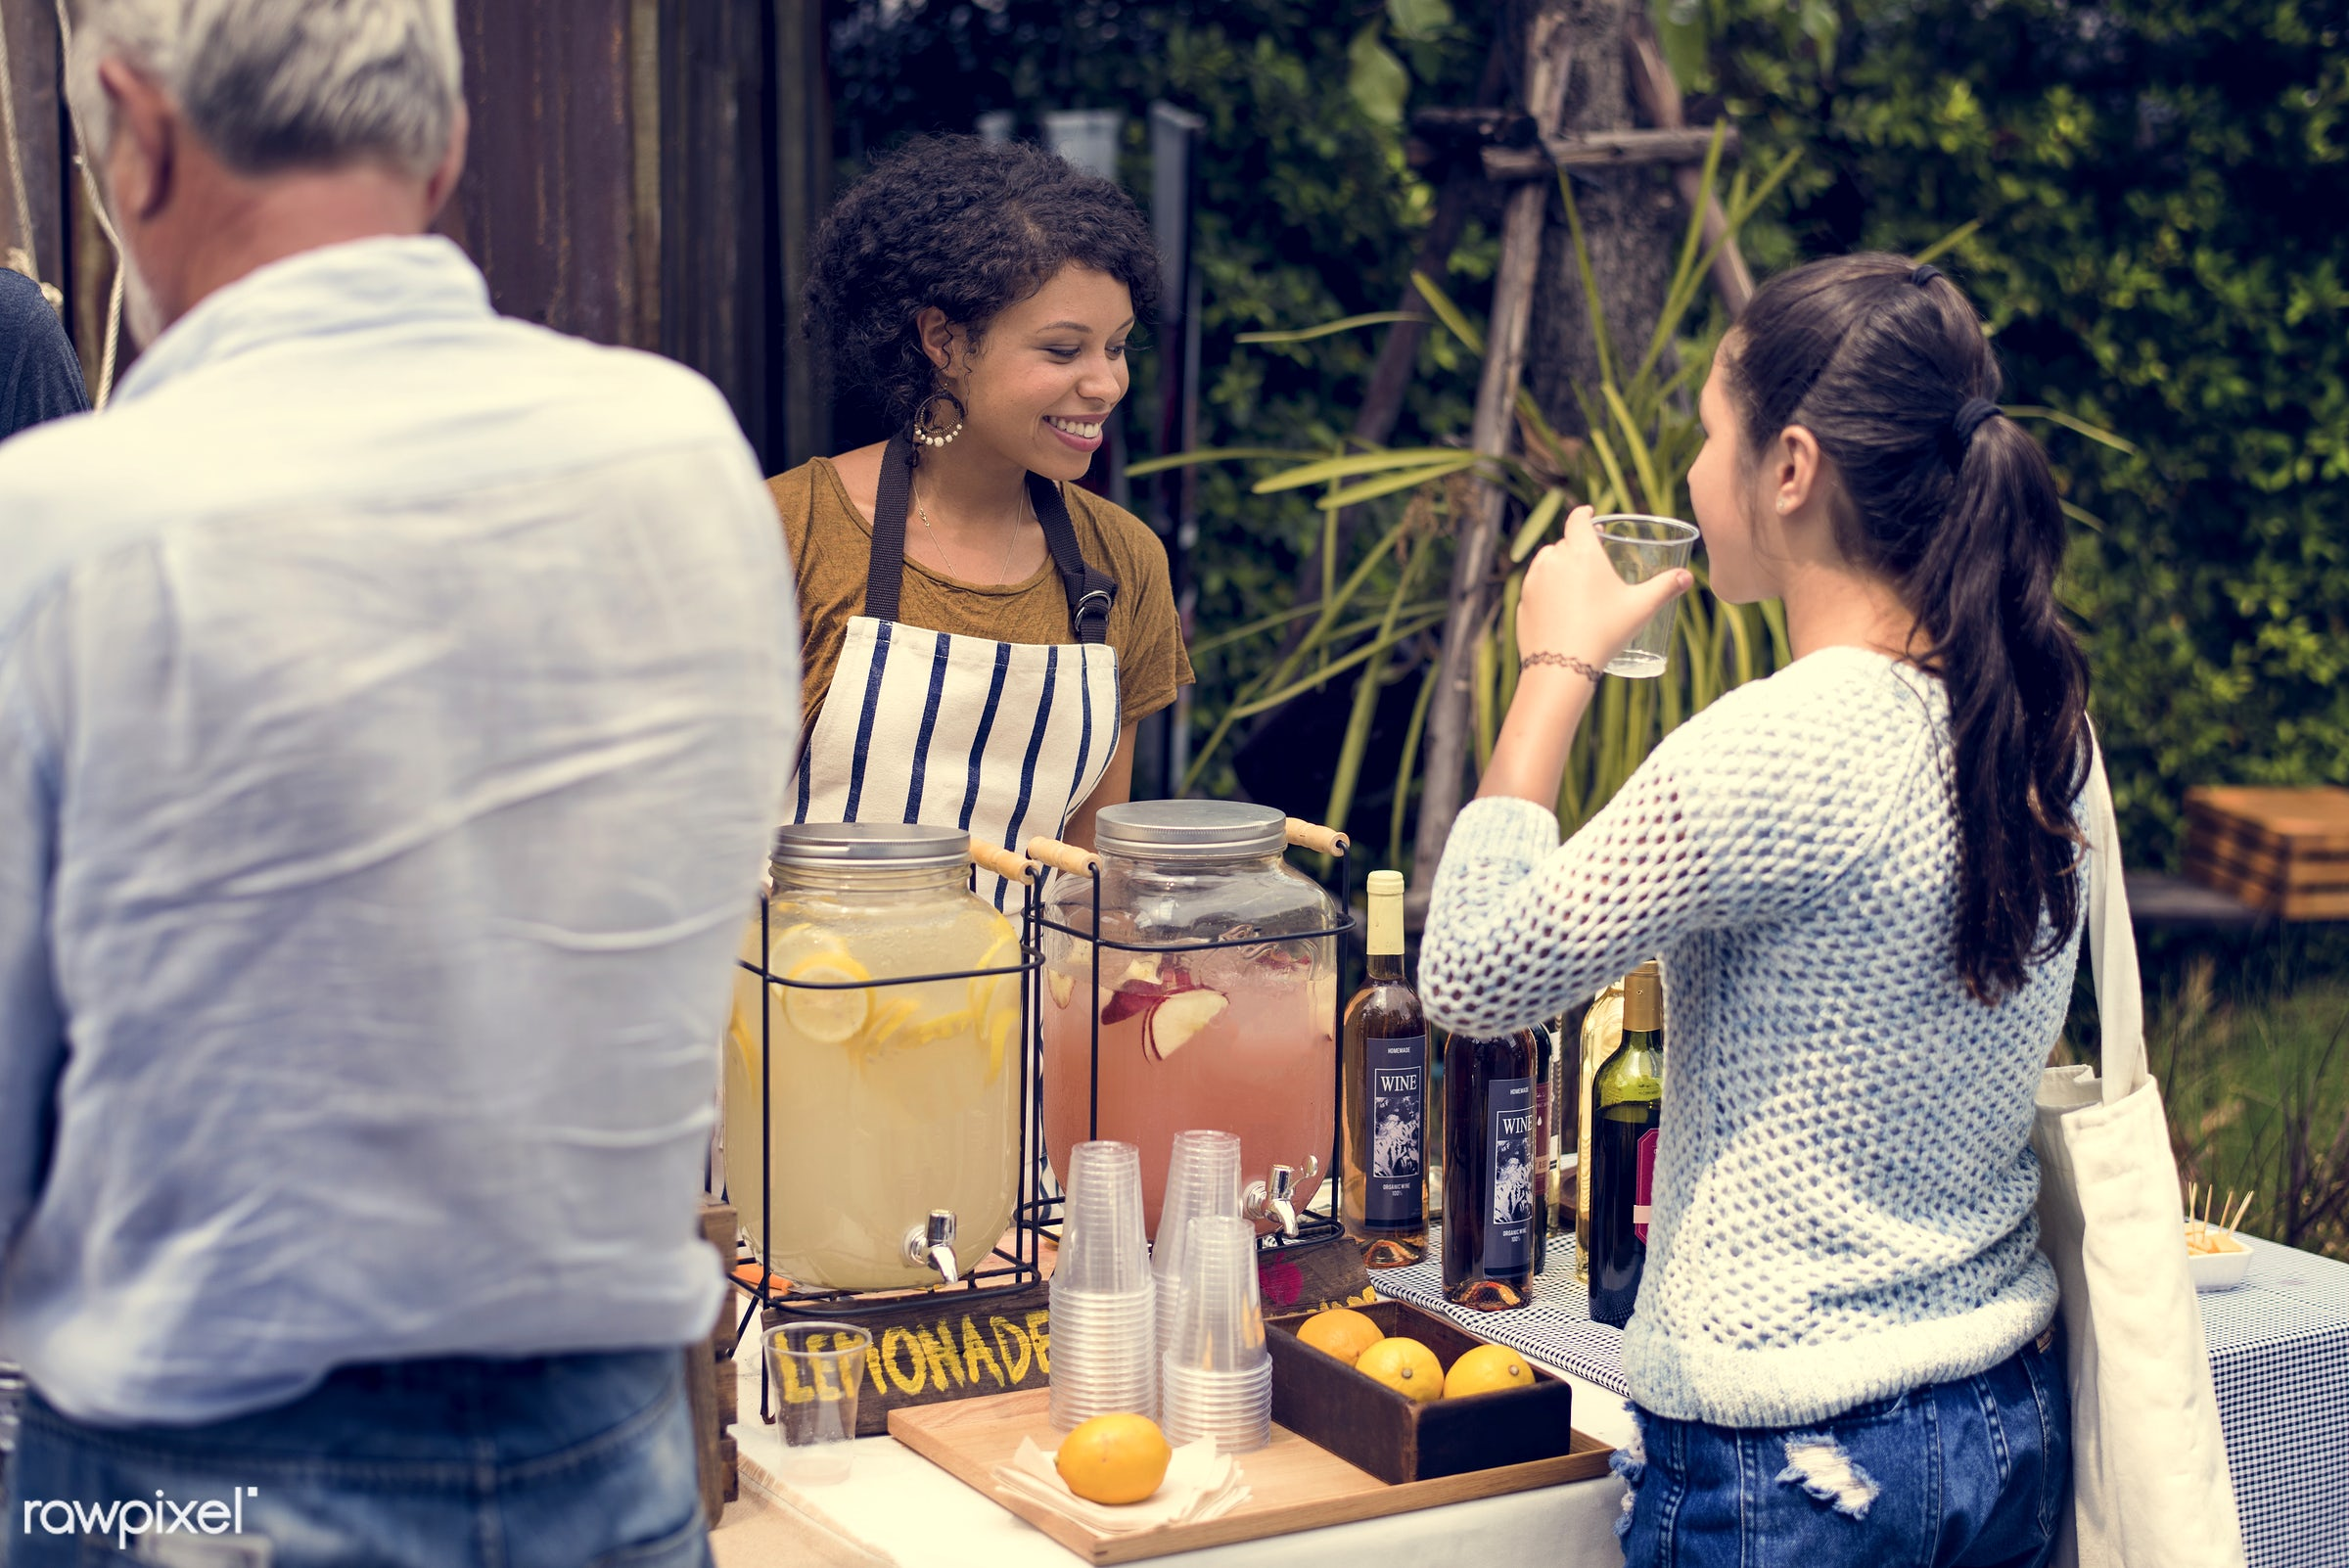 cup, shop, person, stall, test, customer, consumer, homemade, taste, people, open, paper cup, woman, lemonade, juice, drink...